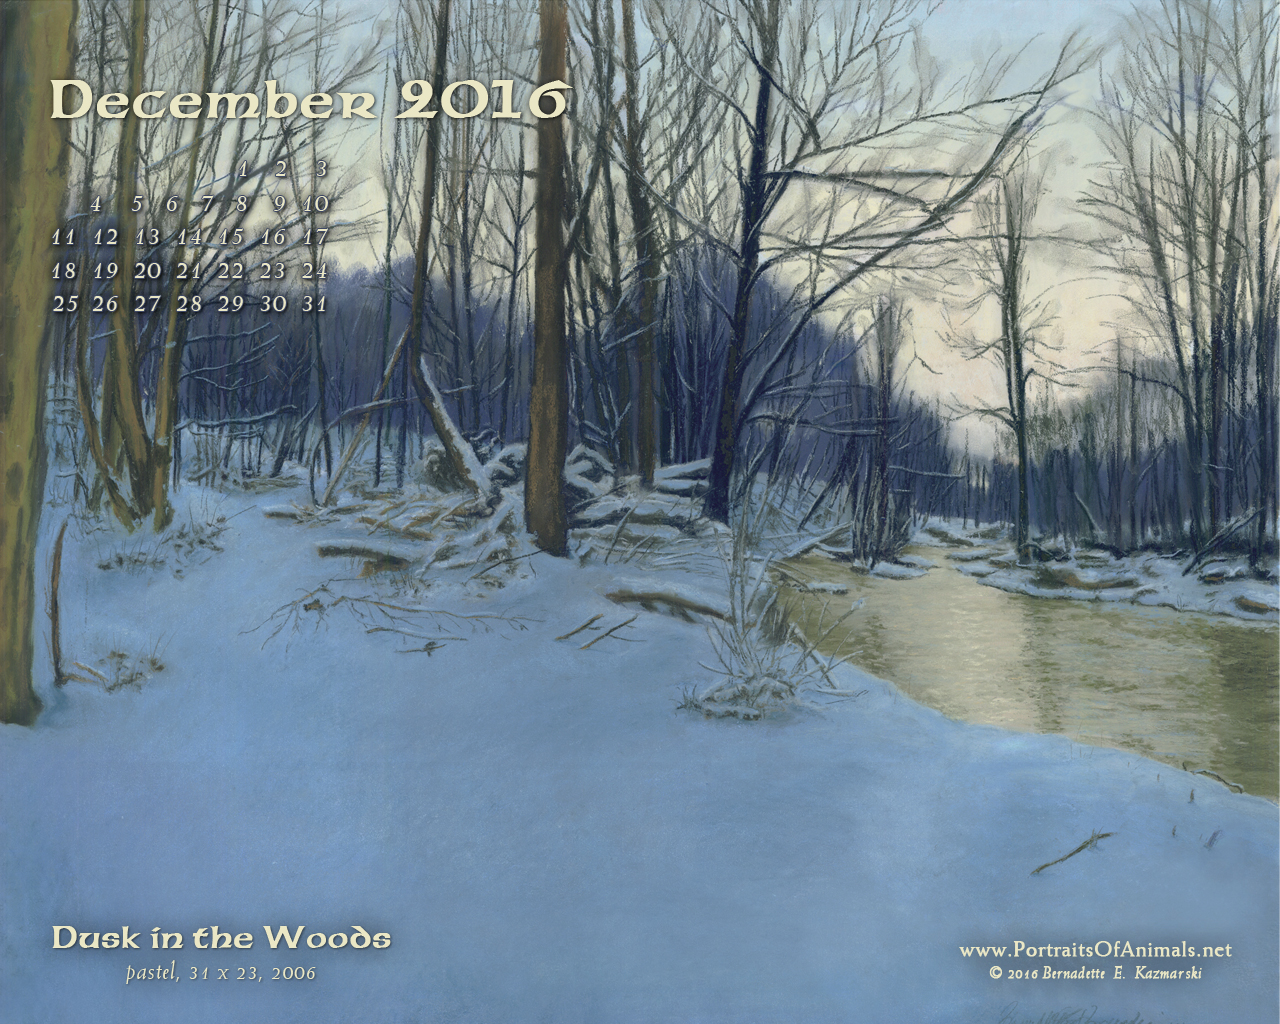 """Dusk in the Woods"" desktop calendar, 1280 x 1024 for square and laptop monitors."